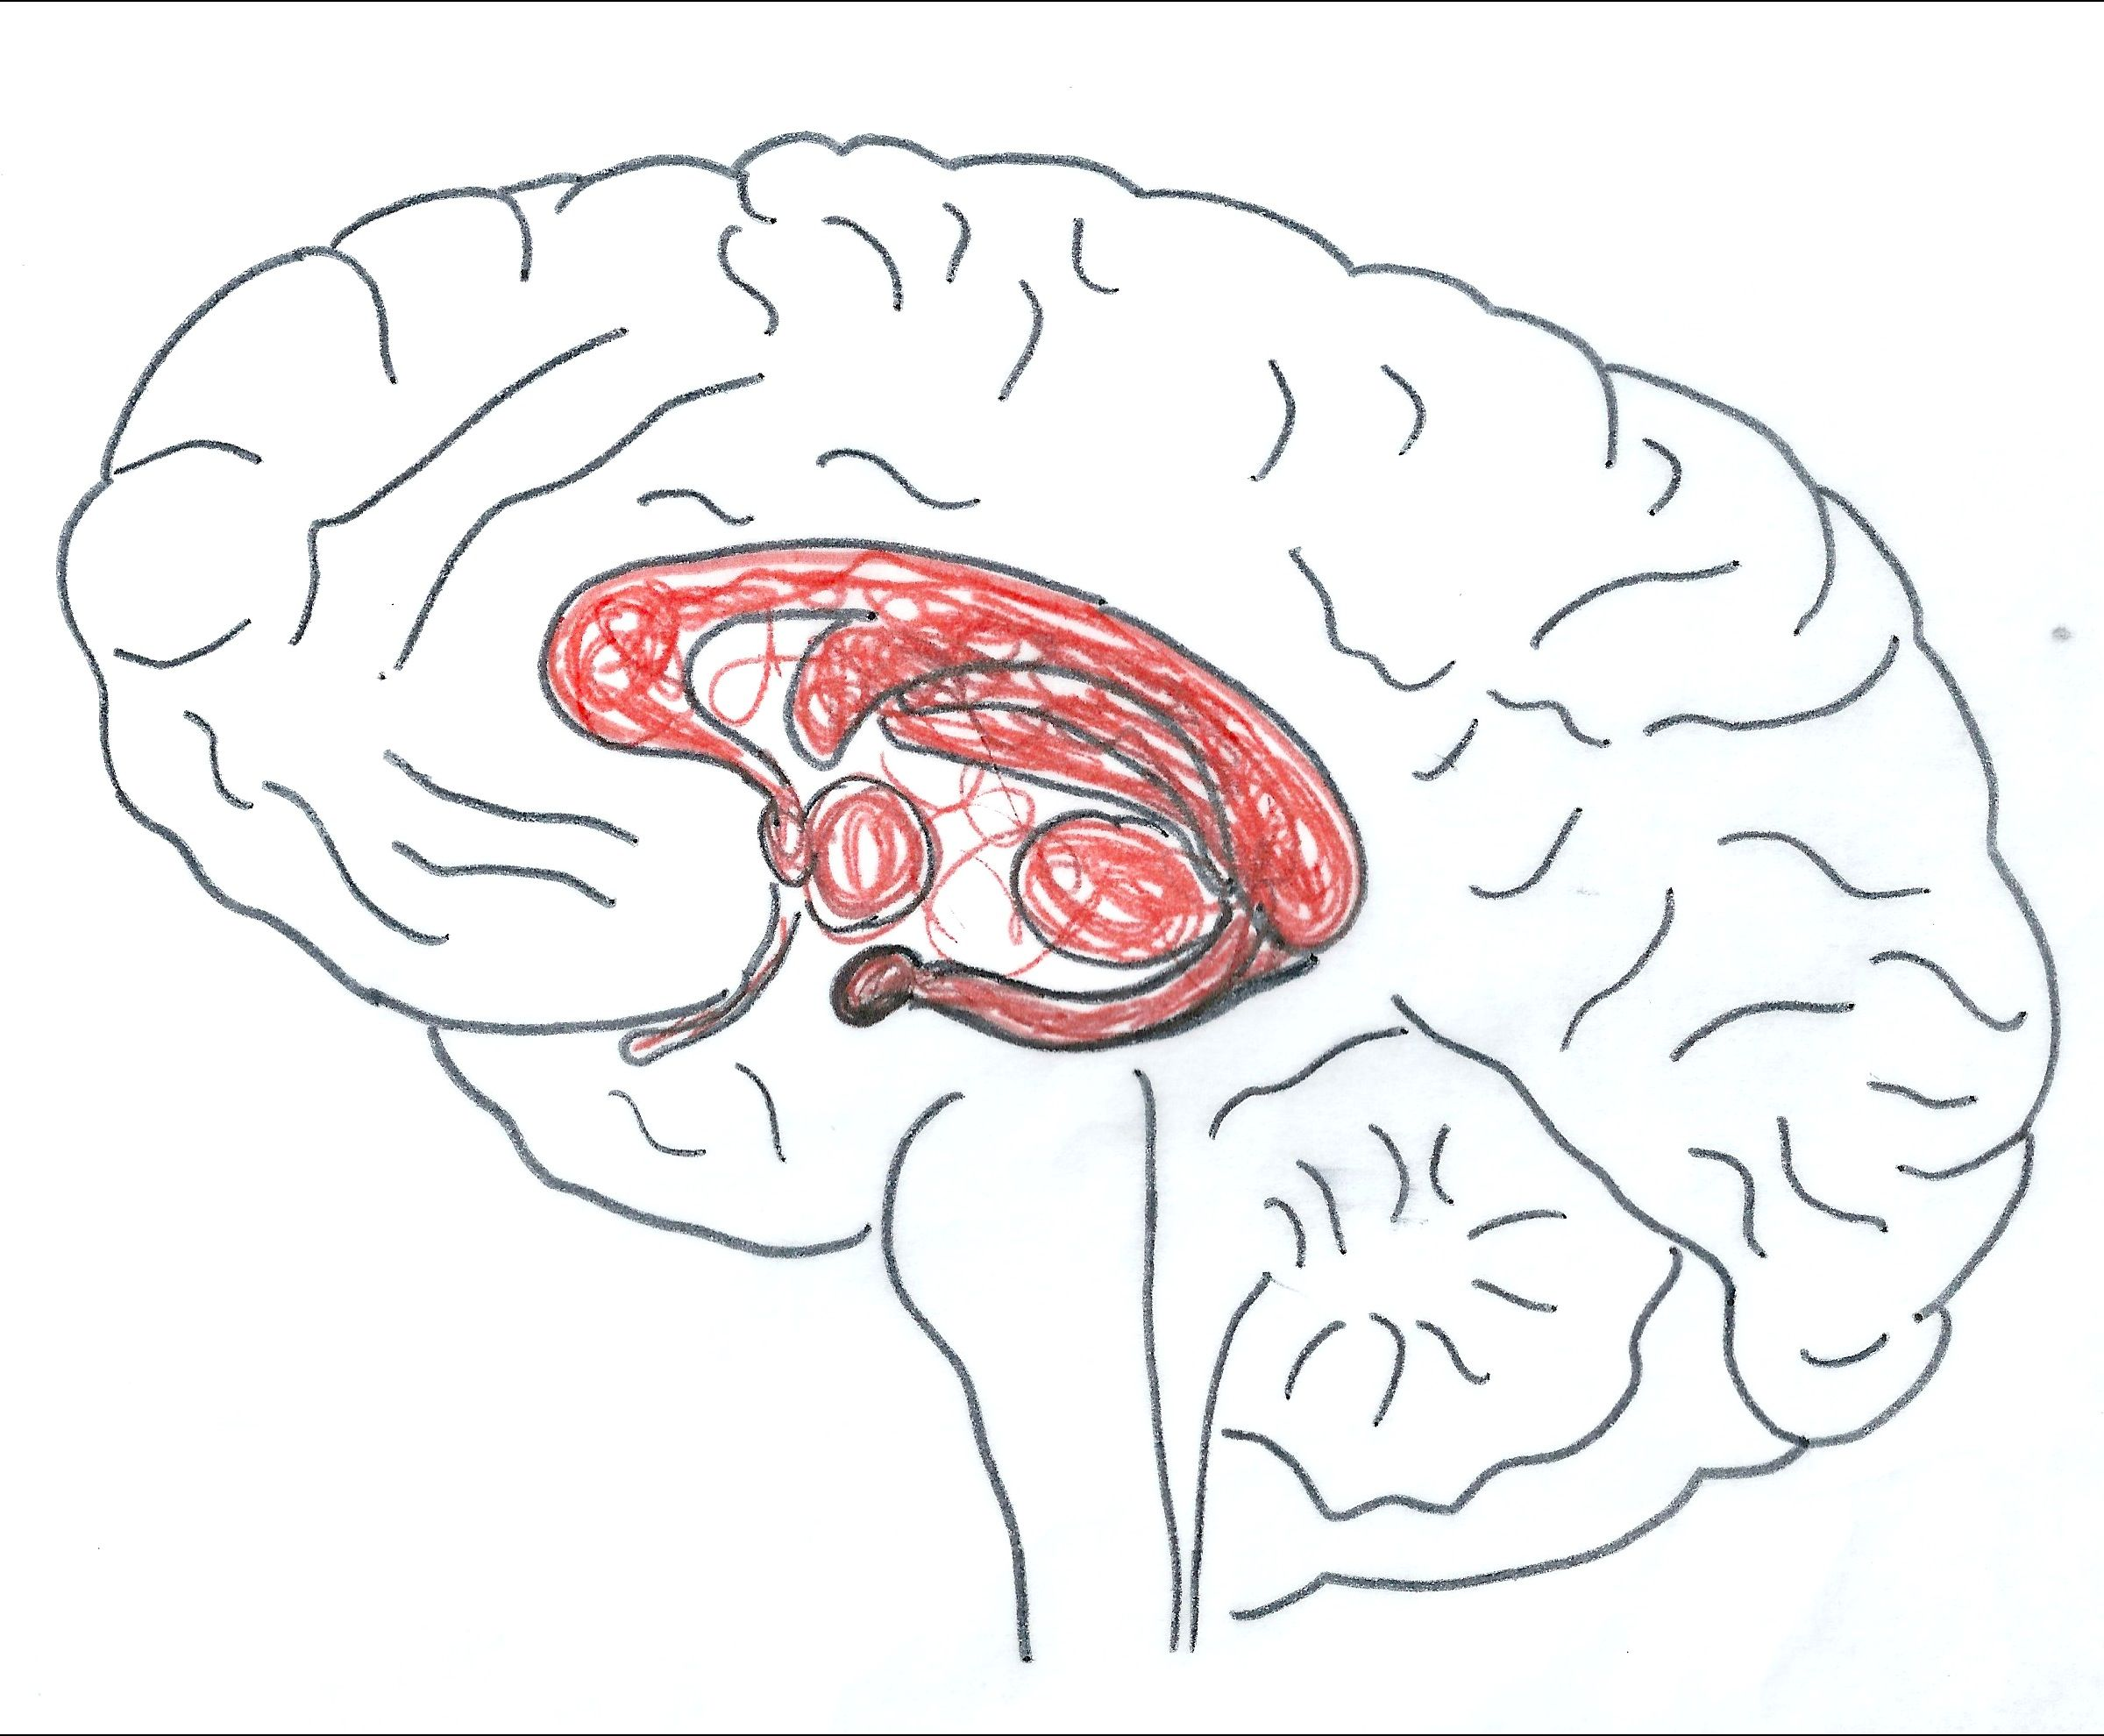 Pic Showing The Limbic System And Cortex Used In A Worksheet With An Activity About The